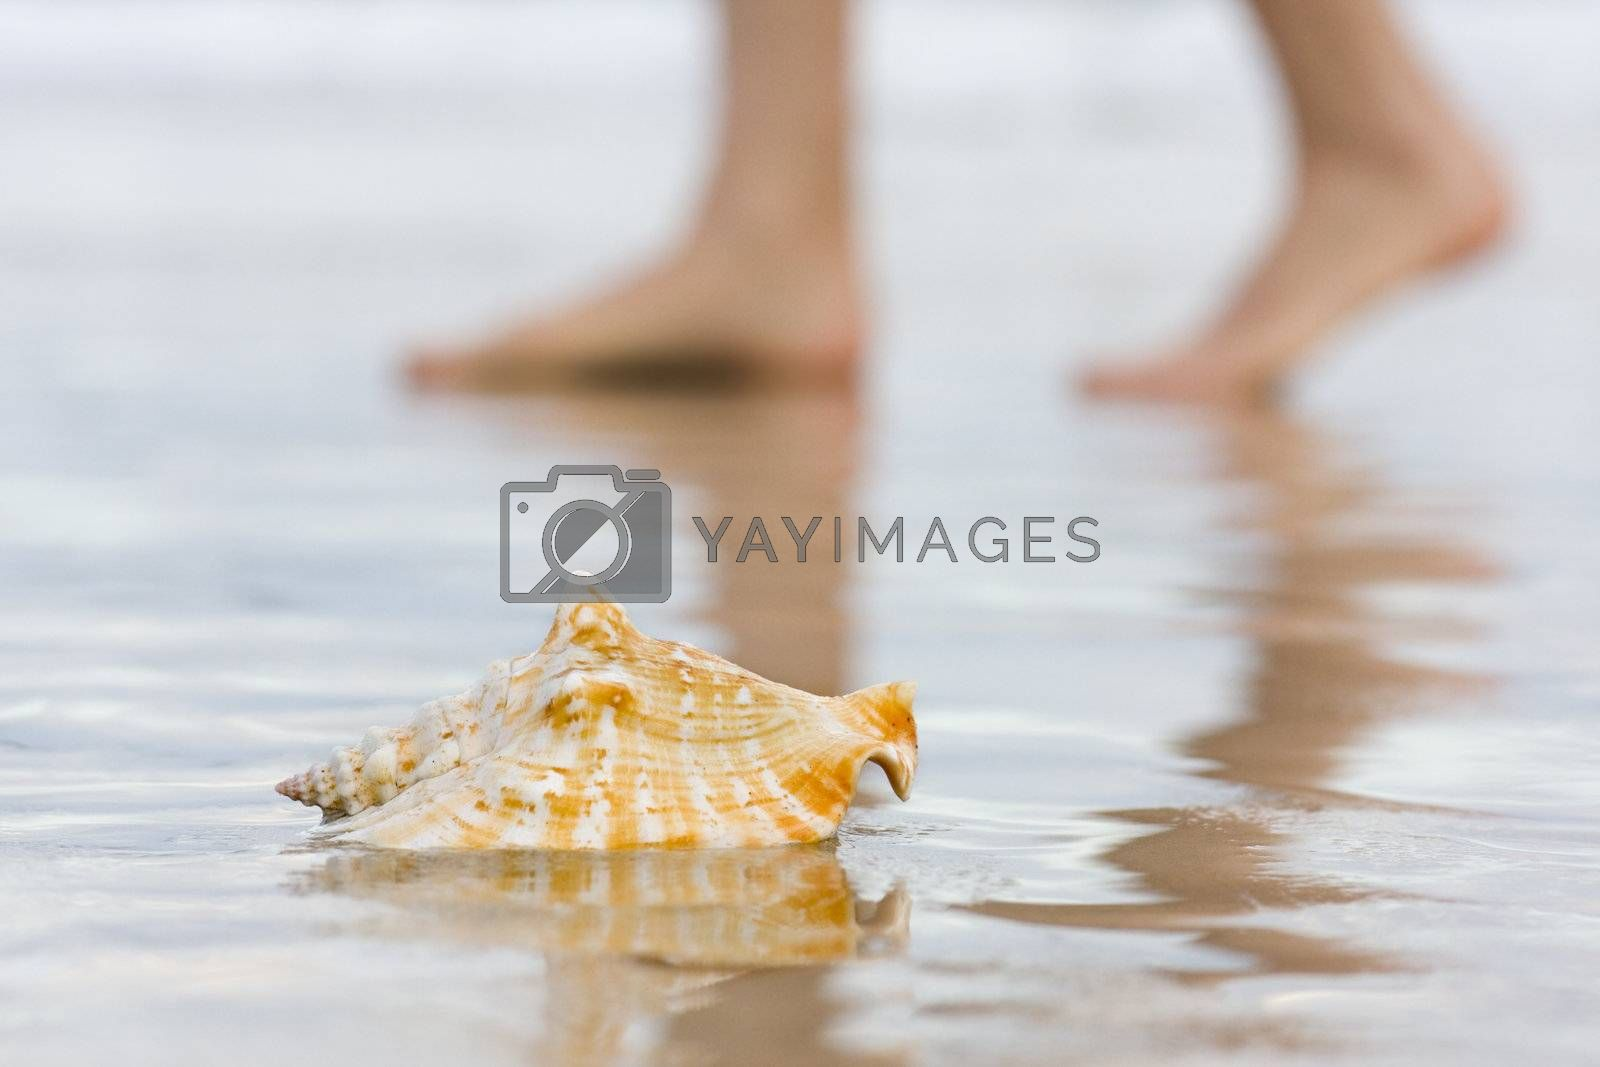 Shell on a beach with blurred bare feet in the background